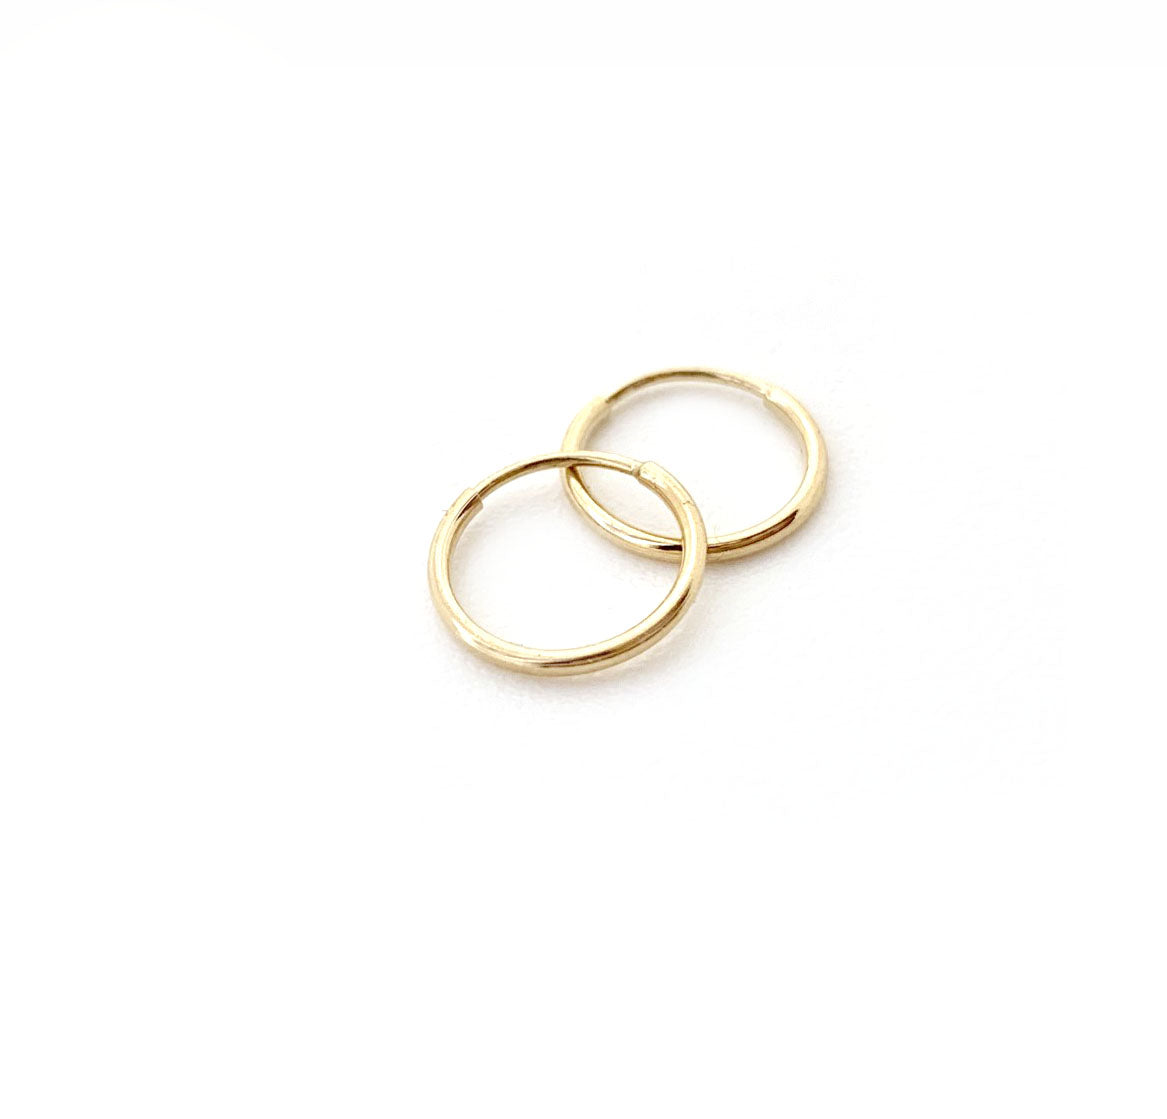 Selah Vie mini hoop earrings 10mm 14k Gold Filled